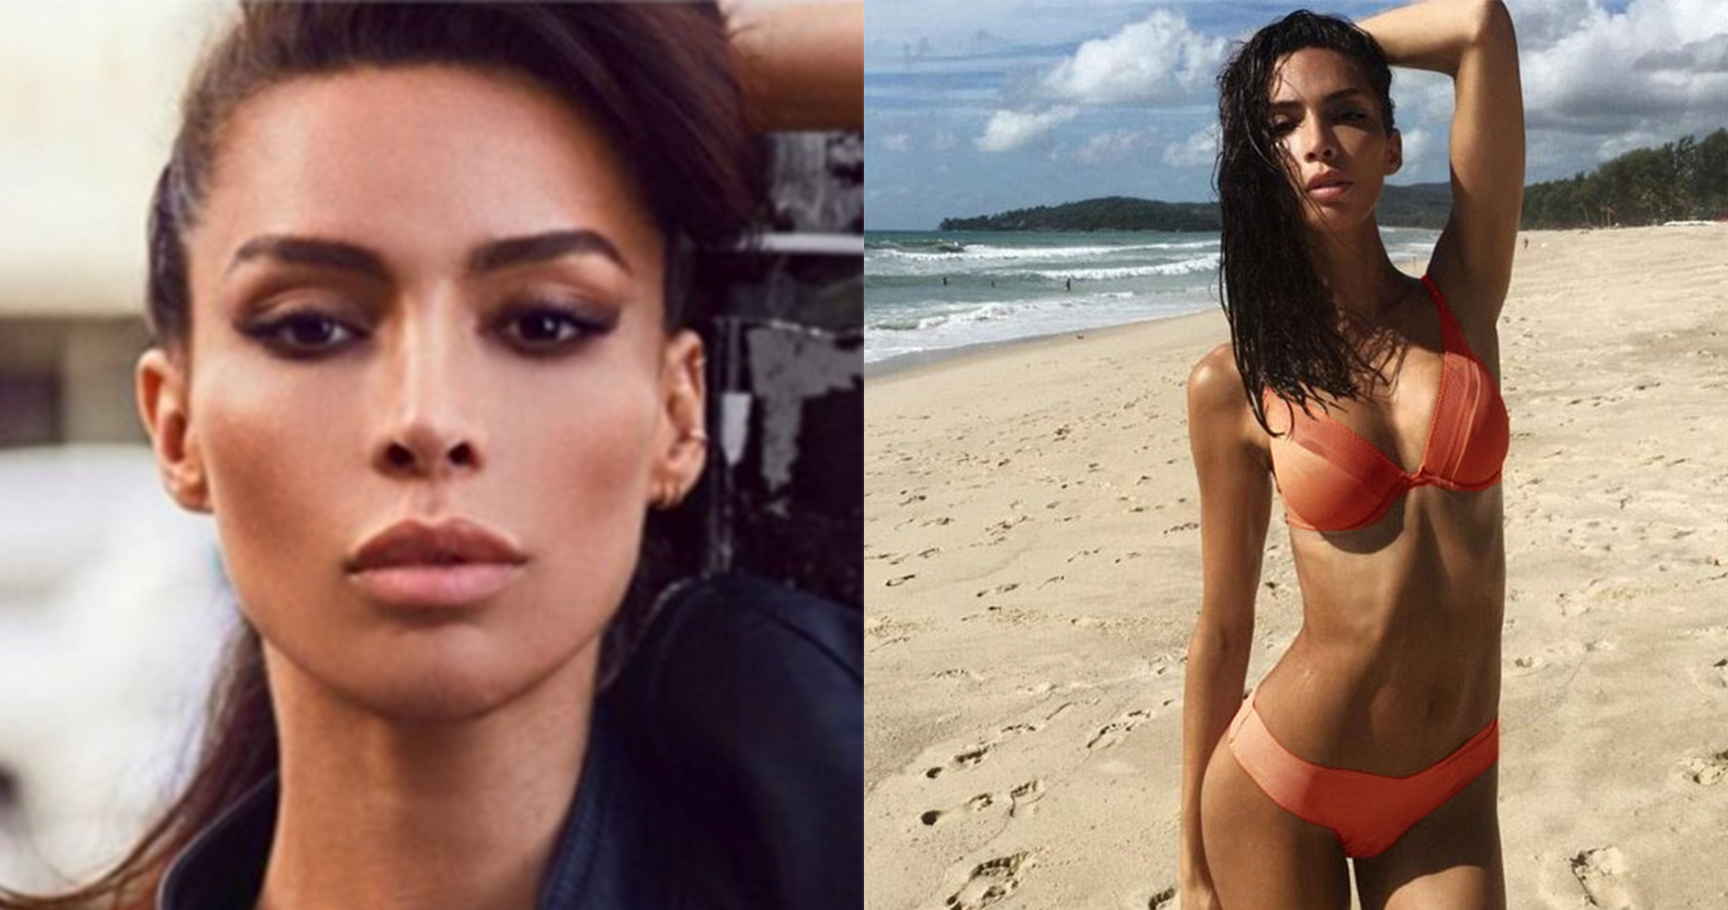 The First Transgender Playmate: 15 Facts About Ines Rau